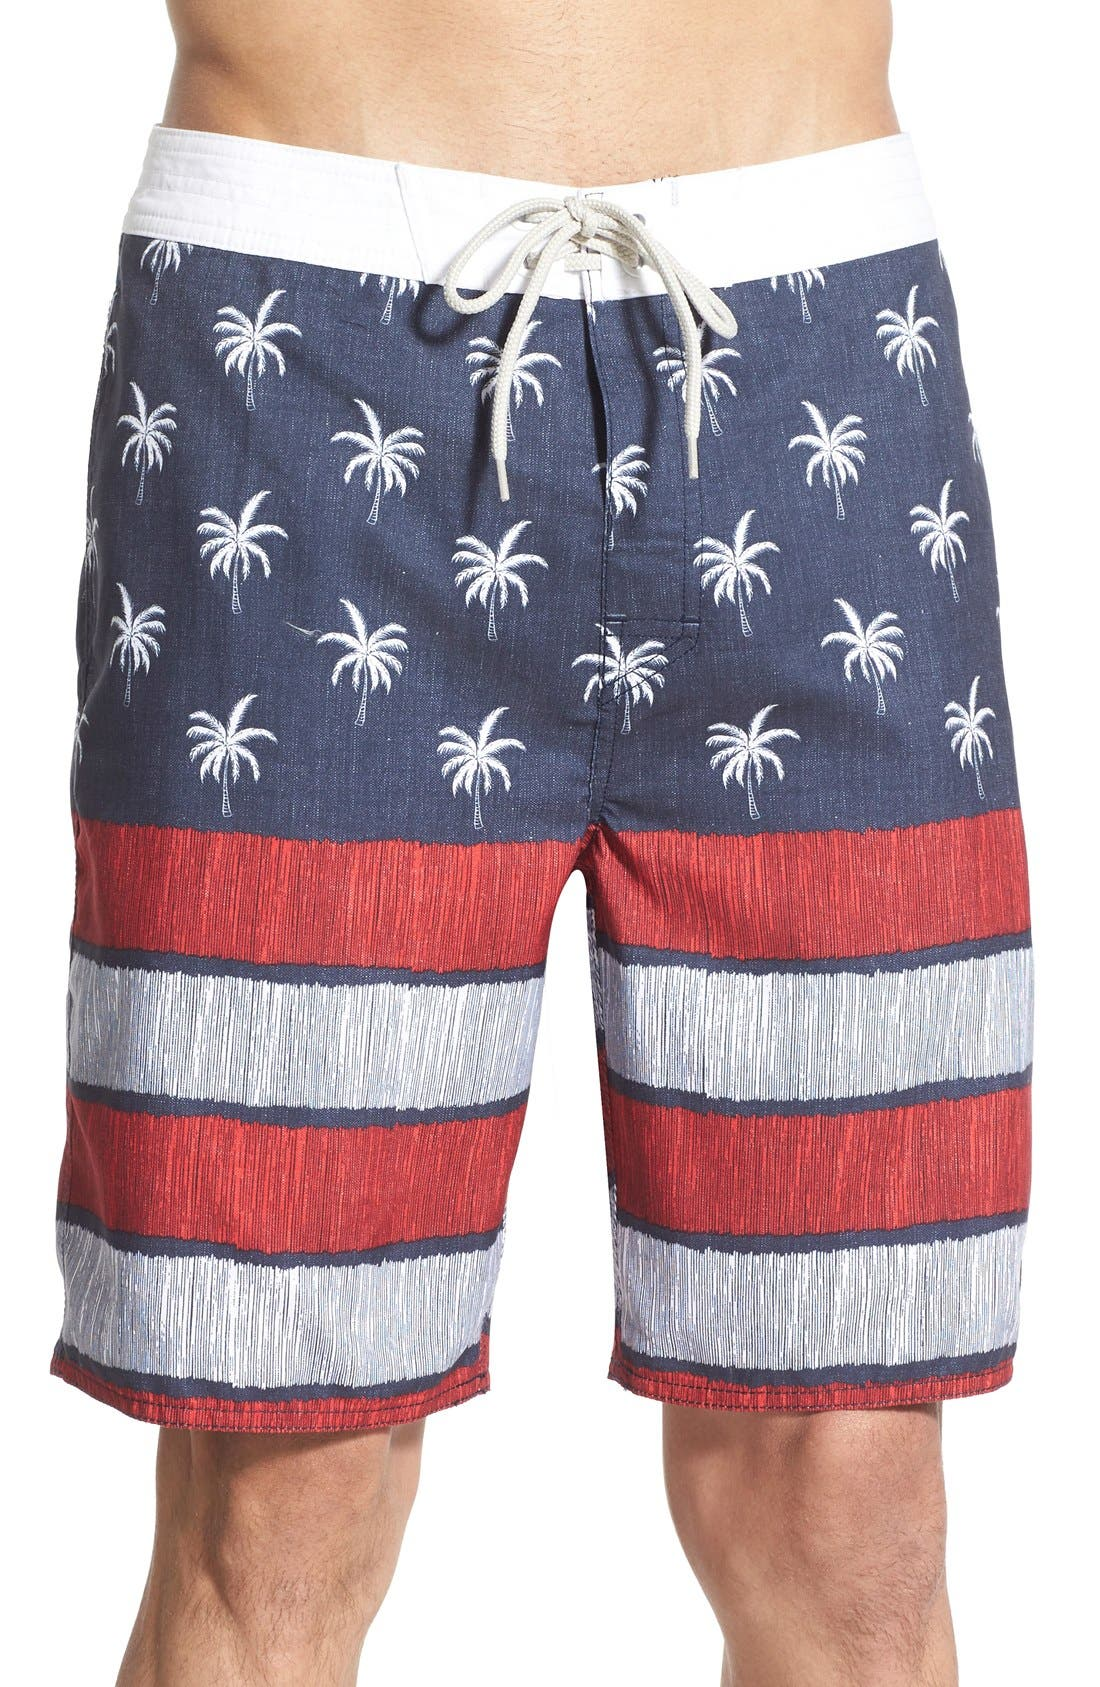 Alternate Image 1 Selected - Rip Curl 'Independence' Board Shorts